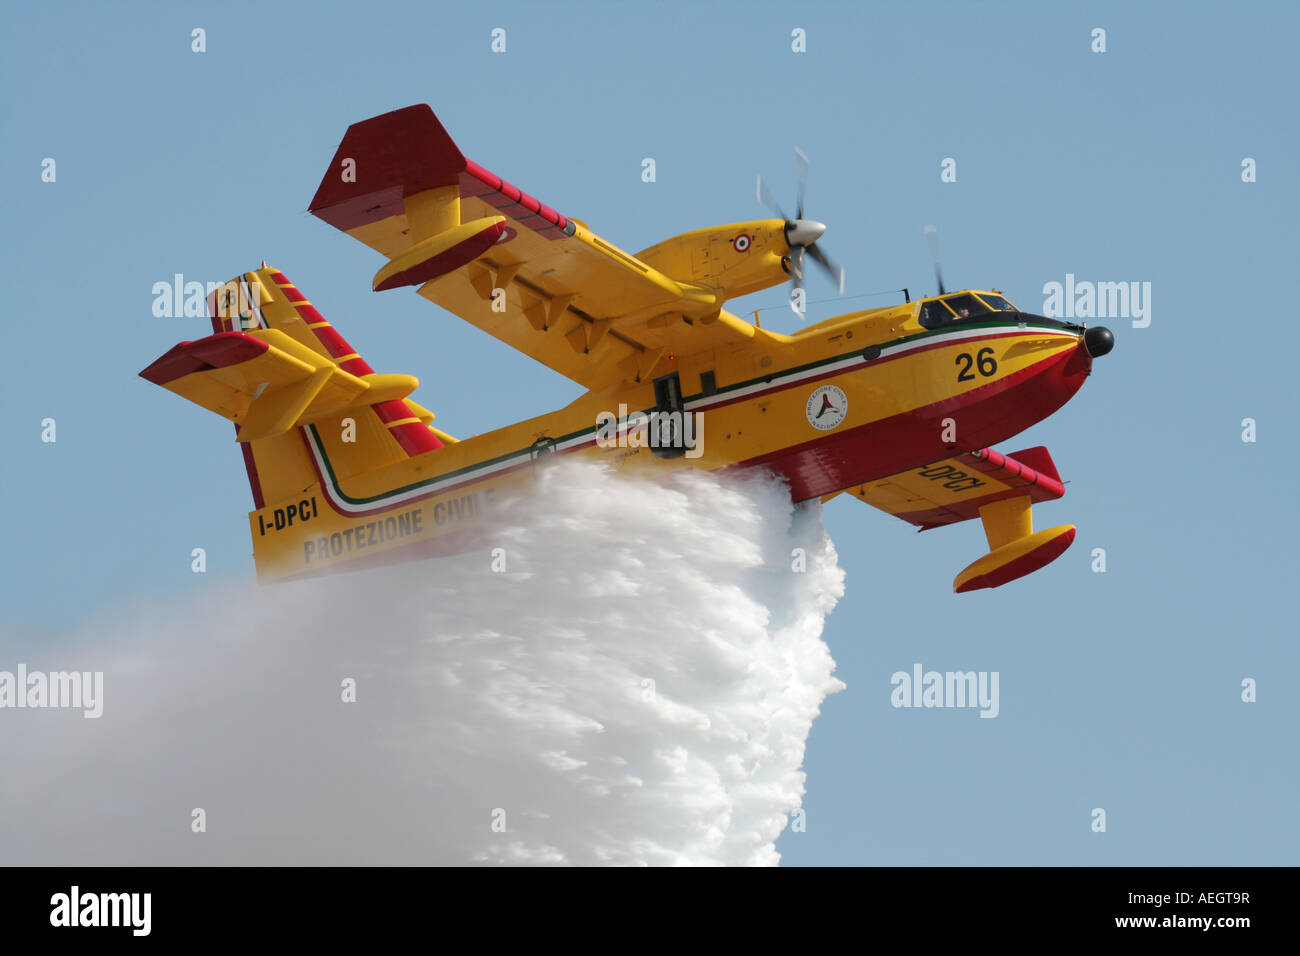 Bombardier 415 (Canadair CL-415) water bomber demonstrating its fire-fighting abilities as it releases its load - Stock Image